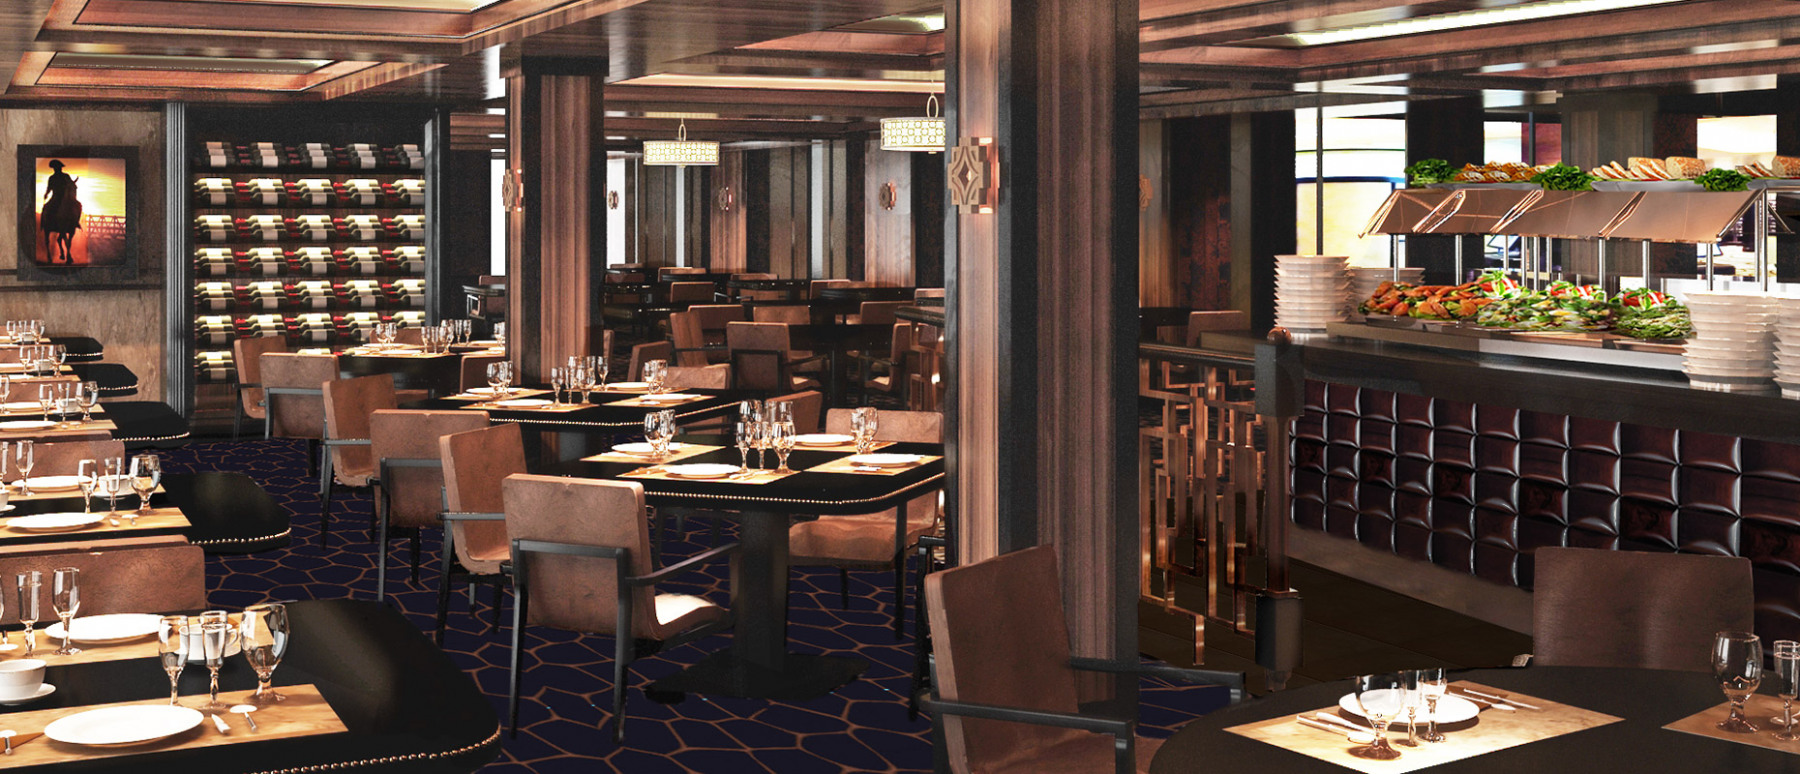 Norwegian Cruise Line Norwegian Escape Interior Moderno.jpg